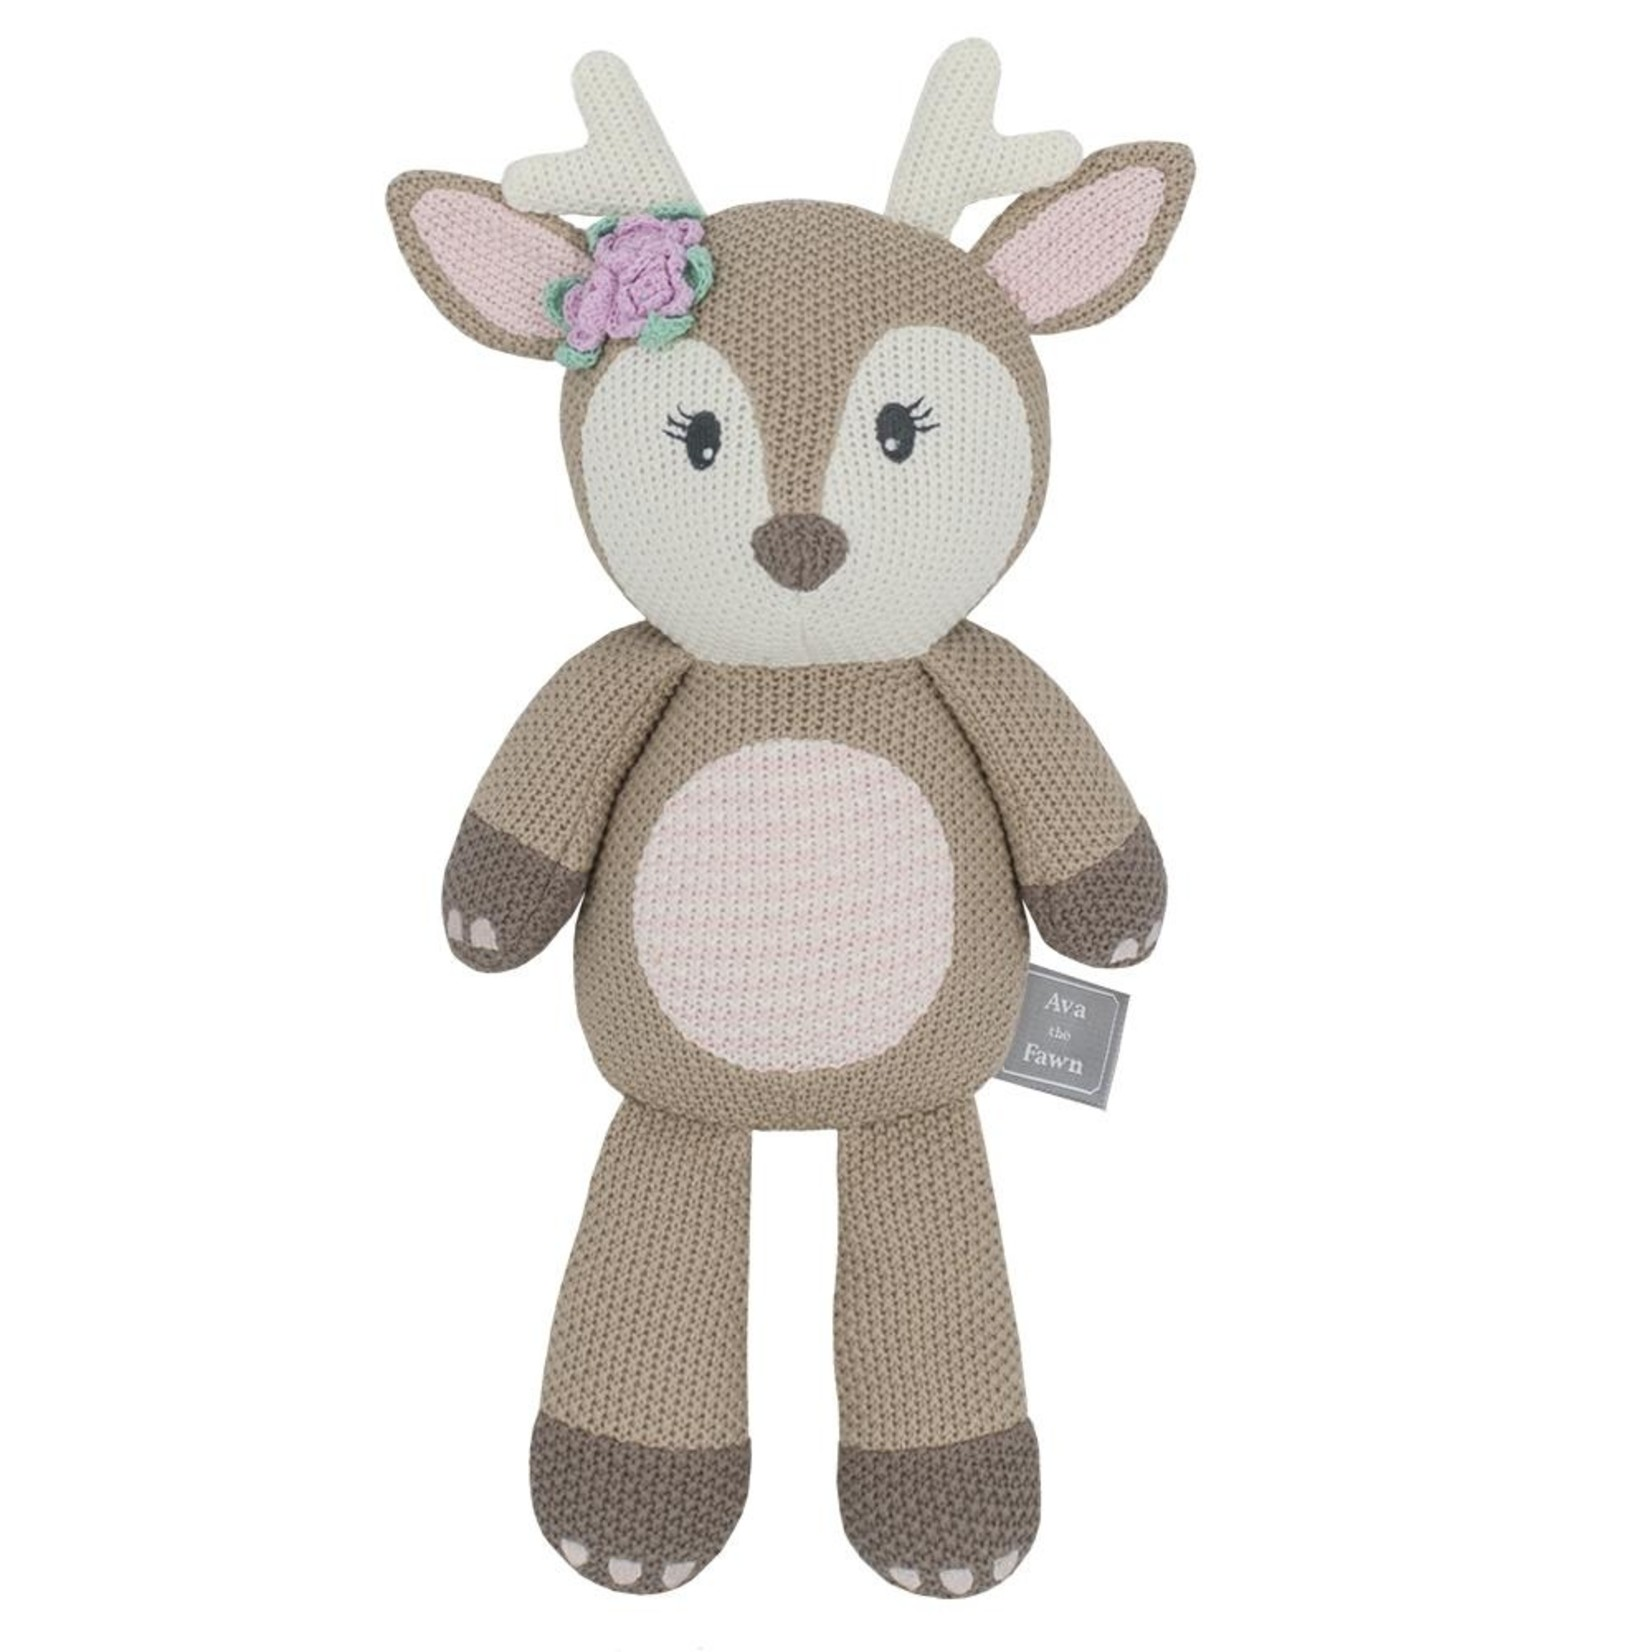 Living Textiles Living Textiles Whimsical Toy - Ava the Fawn